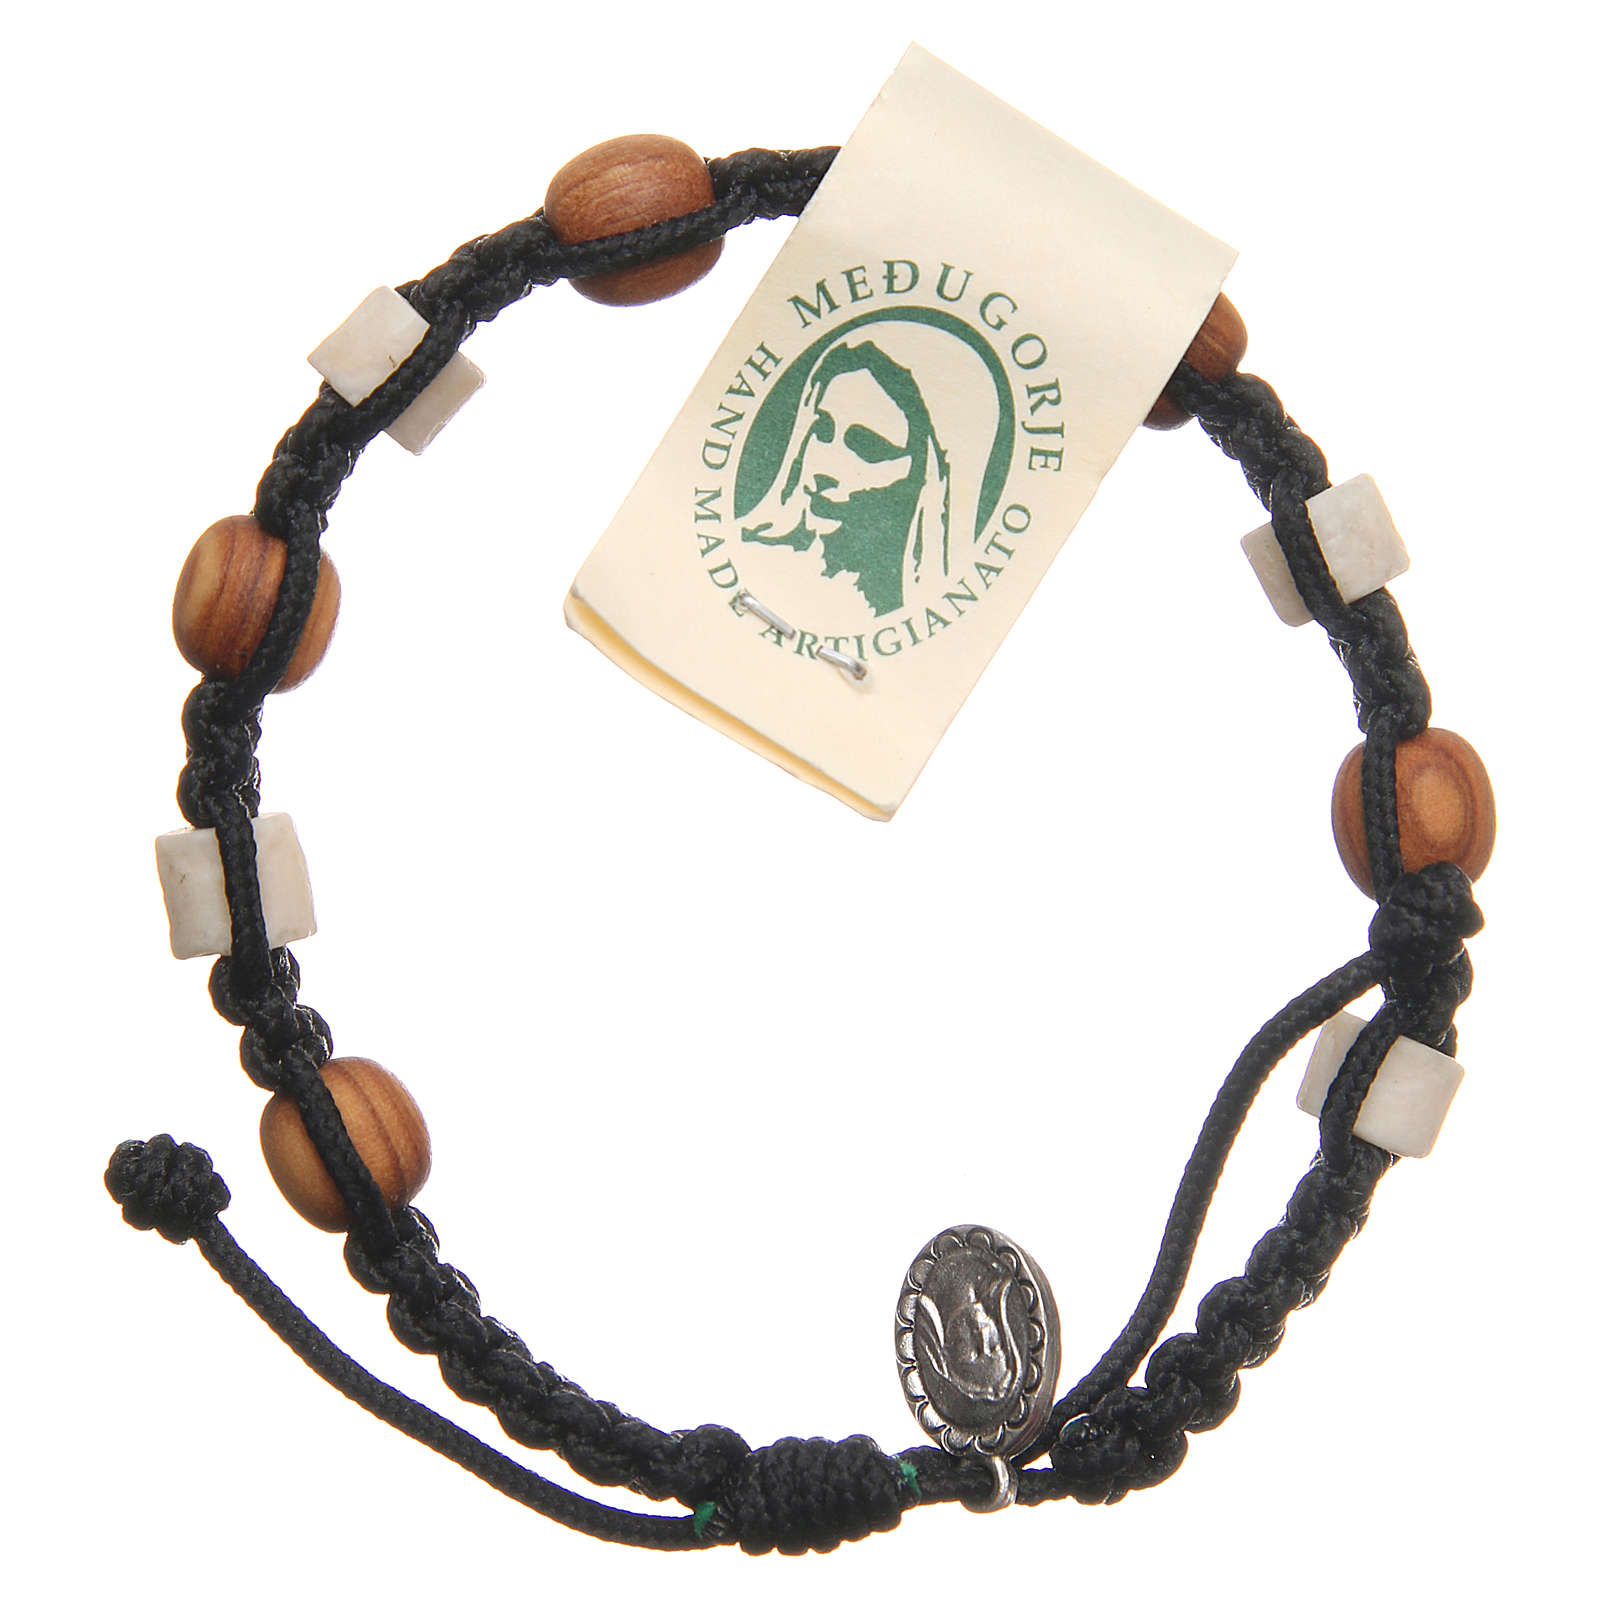 Bracelet in olive wood with grains in white Medjugorje stone and black cord 4